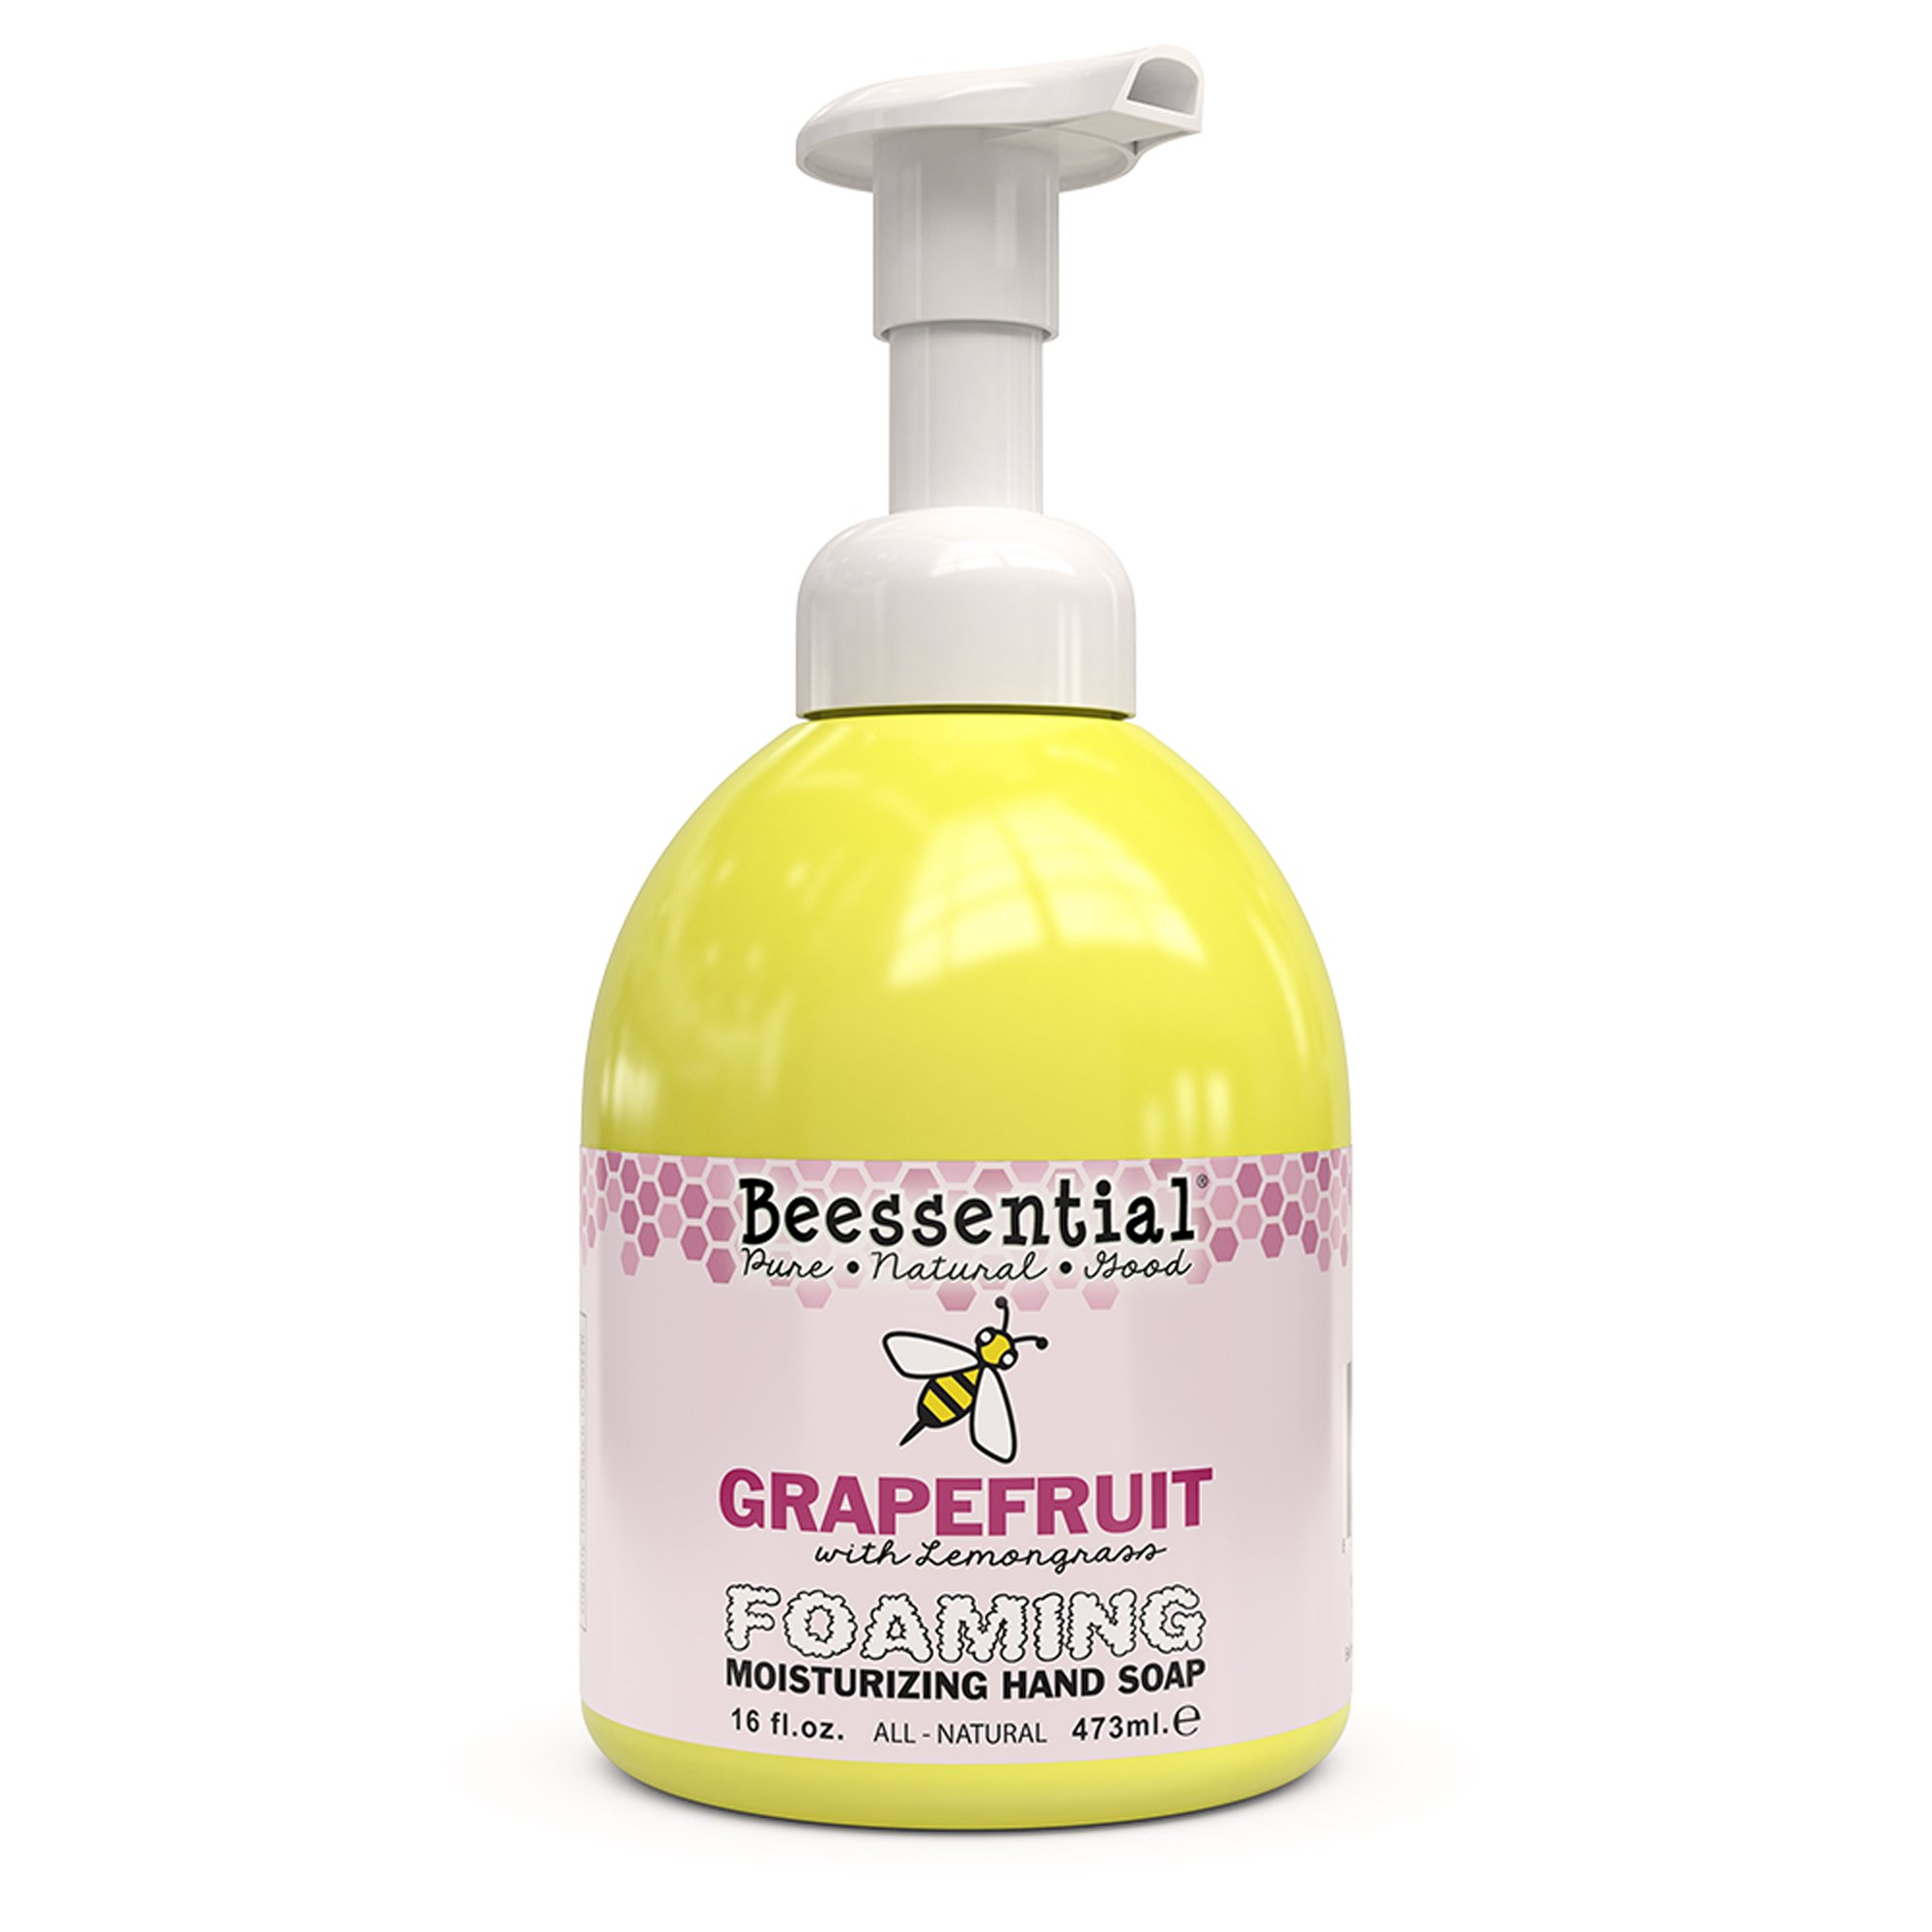 Beessential All Natural Foaming Hand Soap, Grapefruit And Lemongrass Essential Oils, Made with Moisturizing Aloe & Honey - Made in the USA, 16 oz